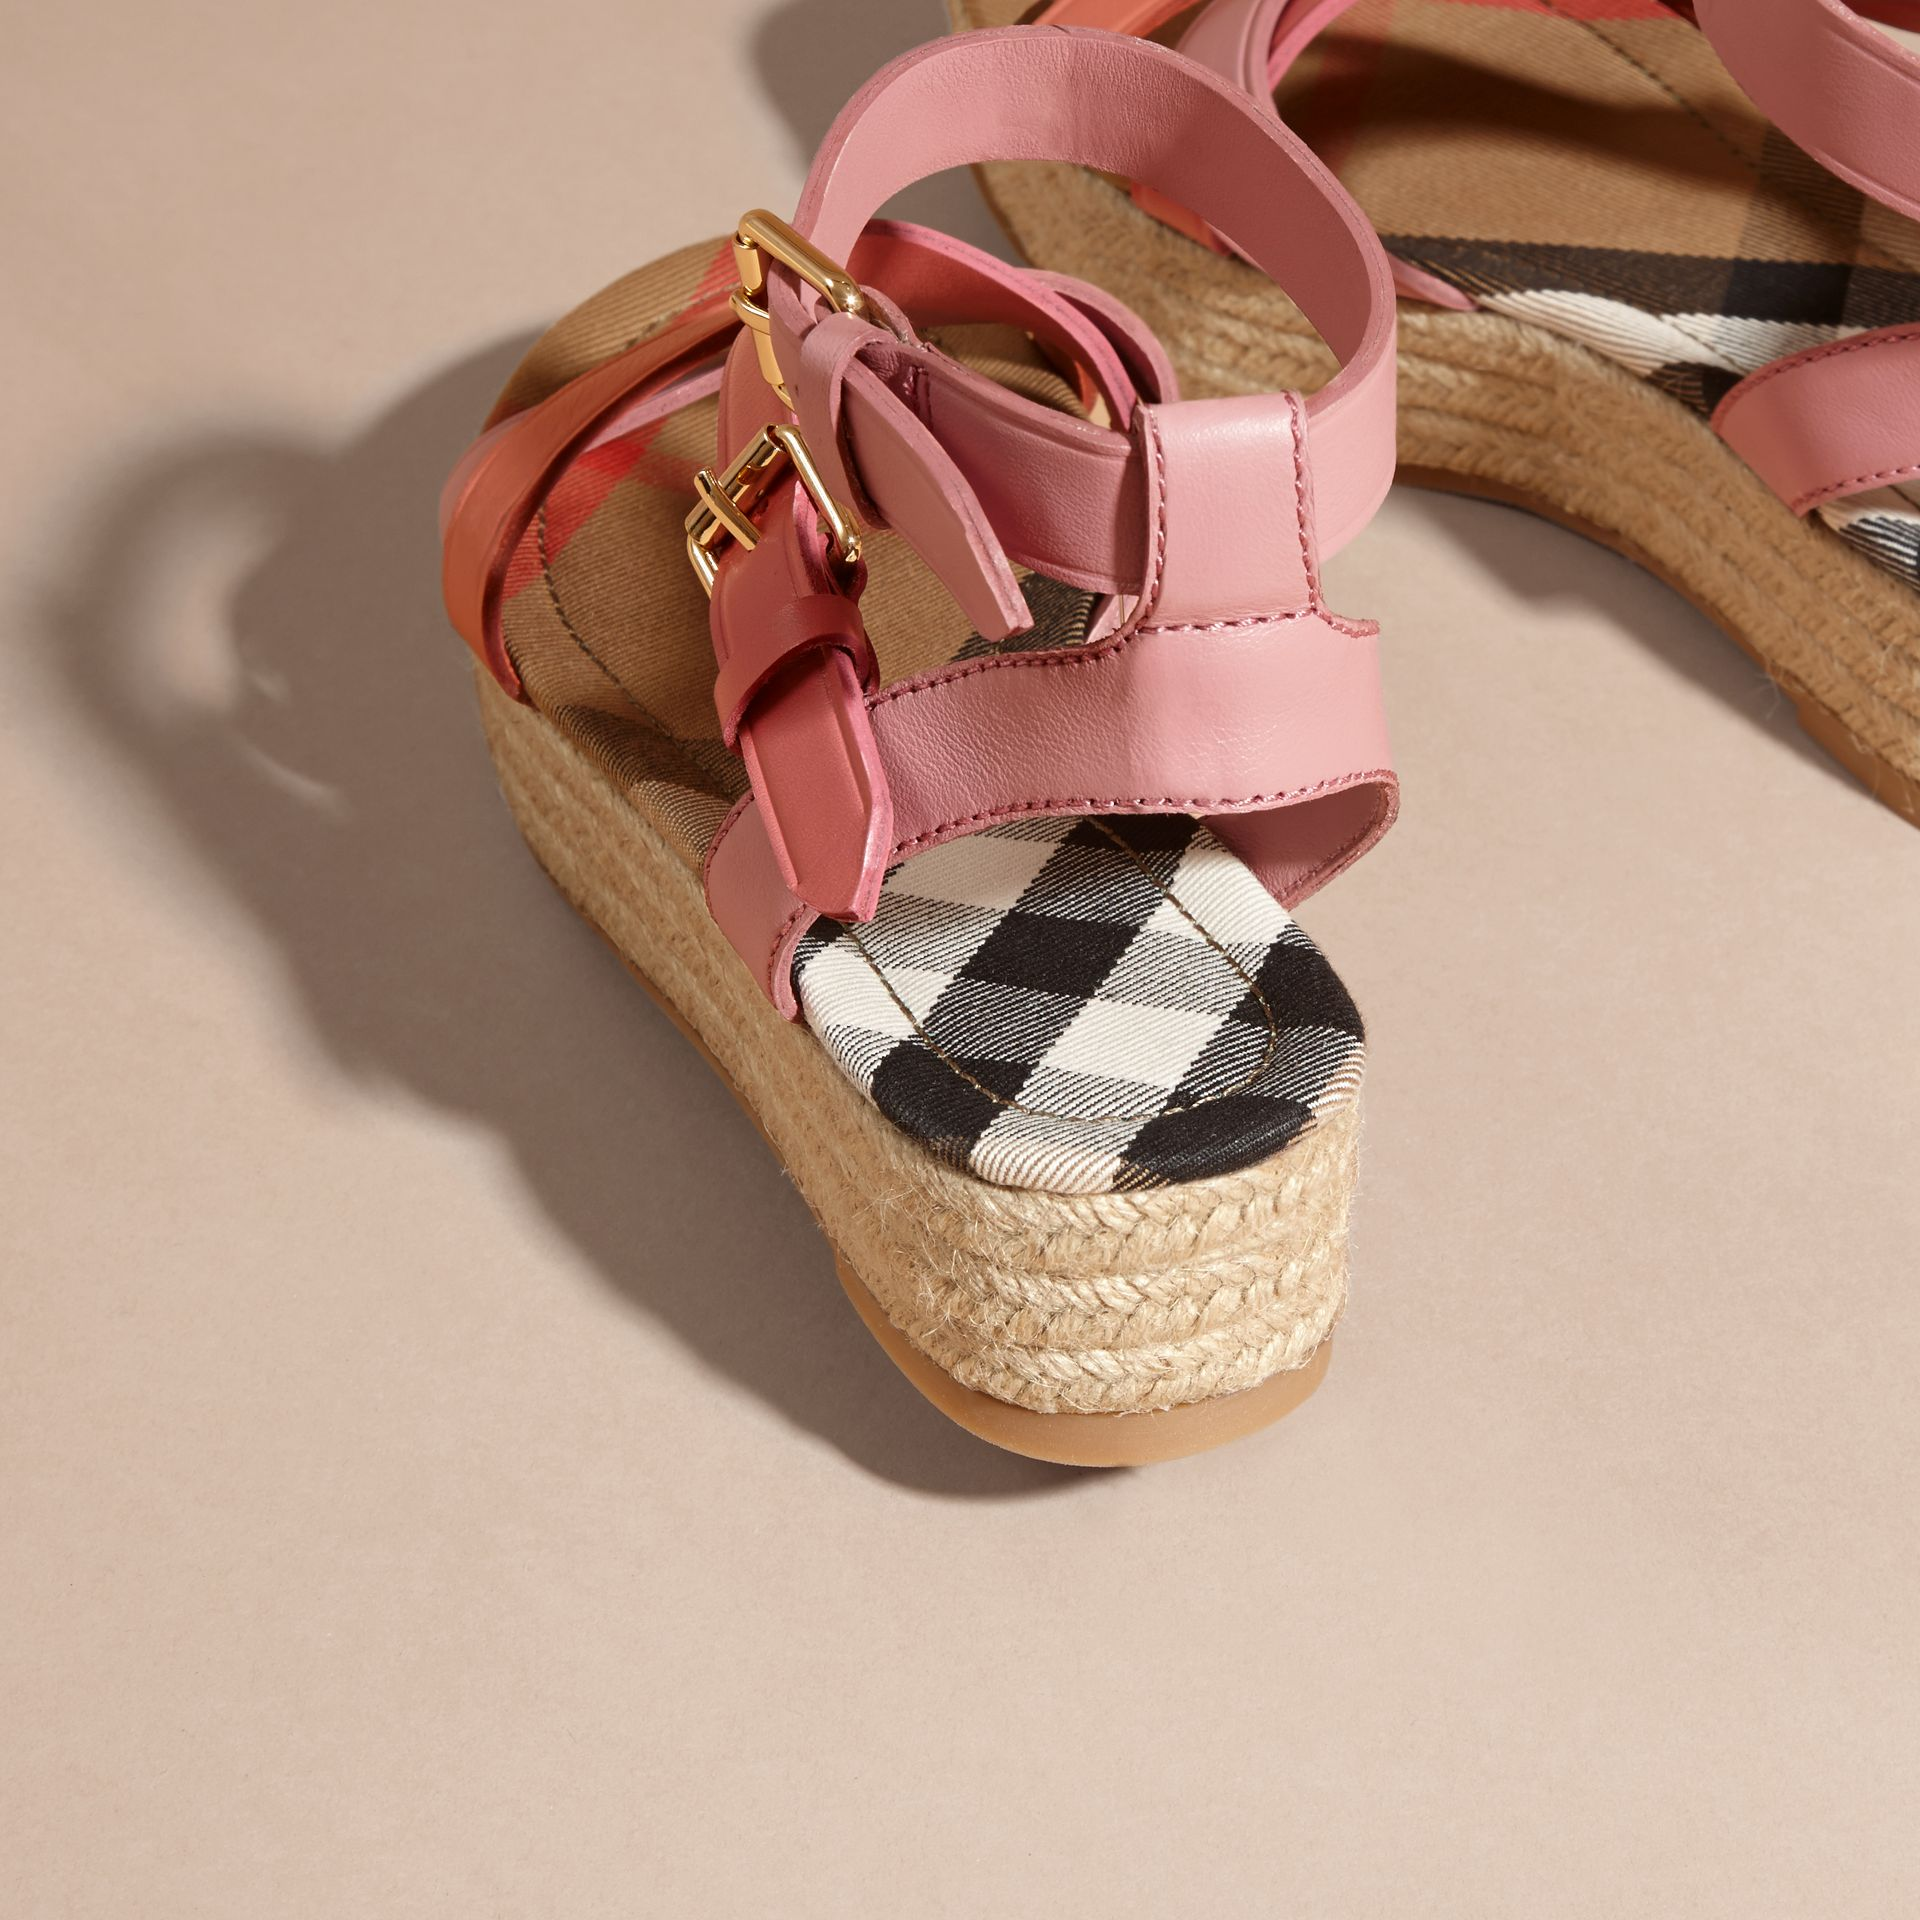 Two-tone Leather Espadrille Sandals in Dusty Pink - Women | Burberry - gallery image 5